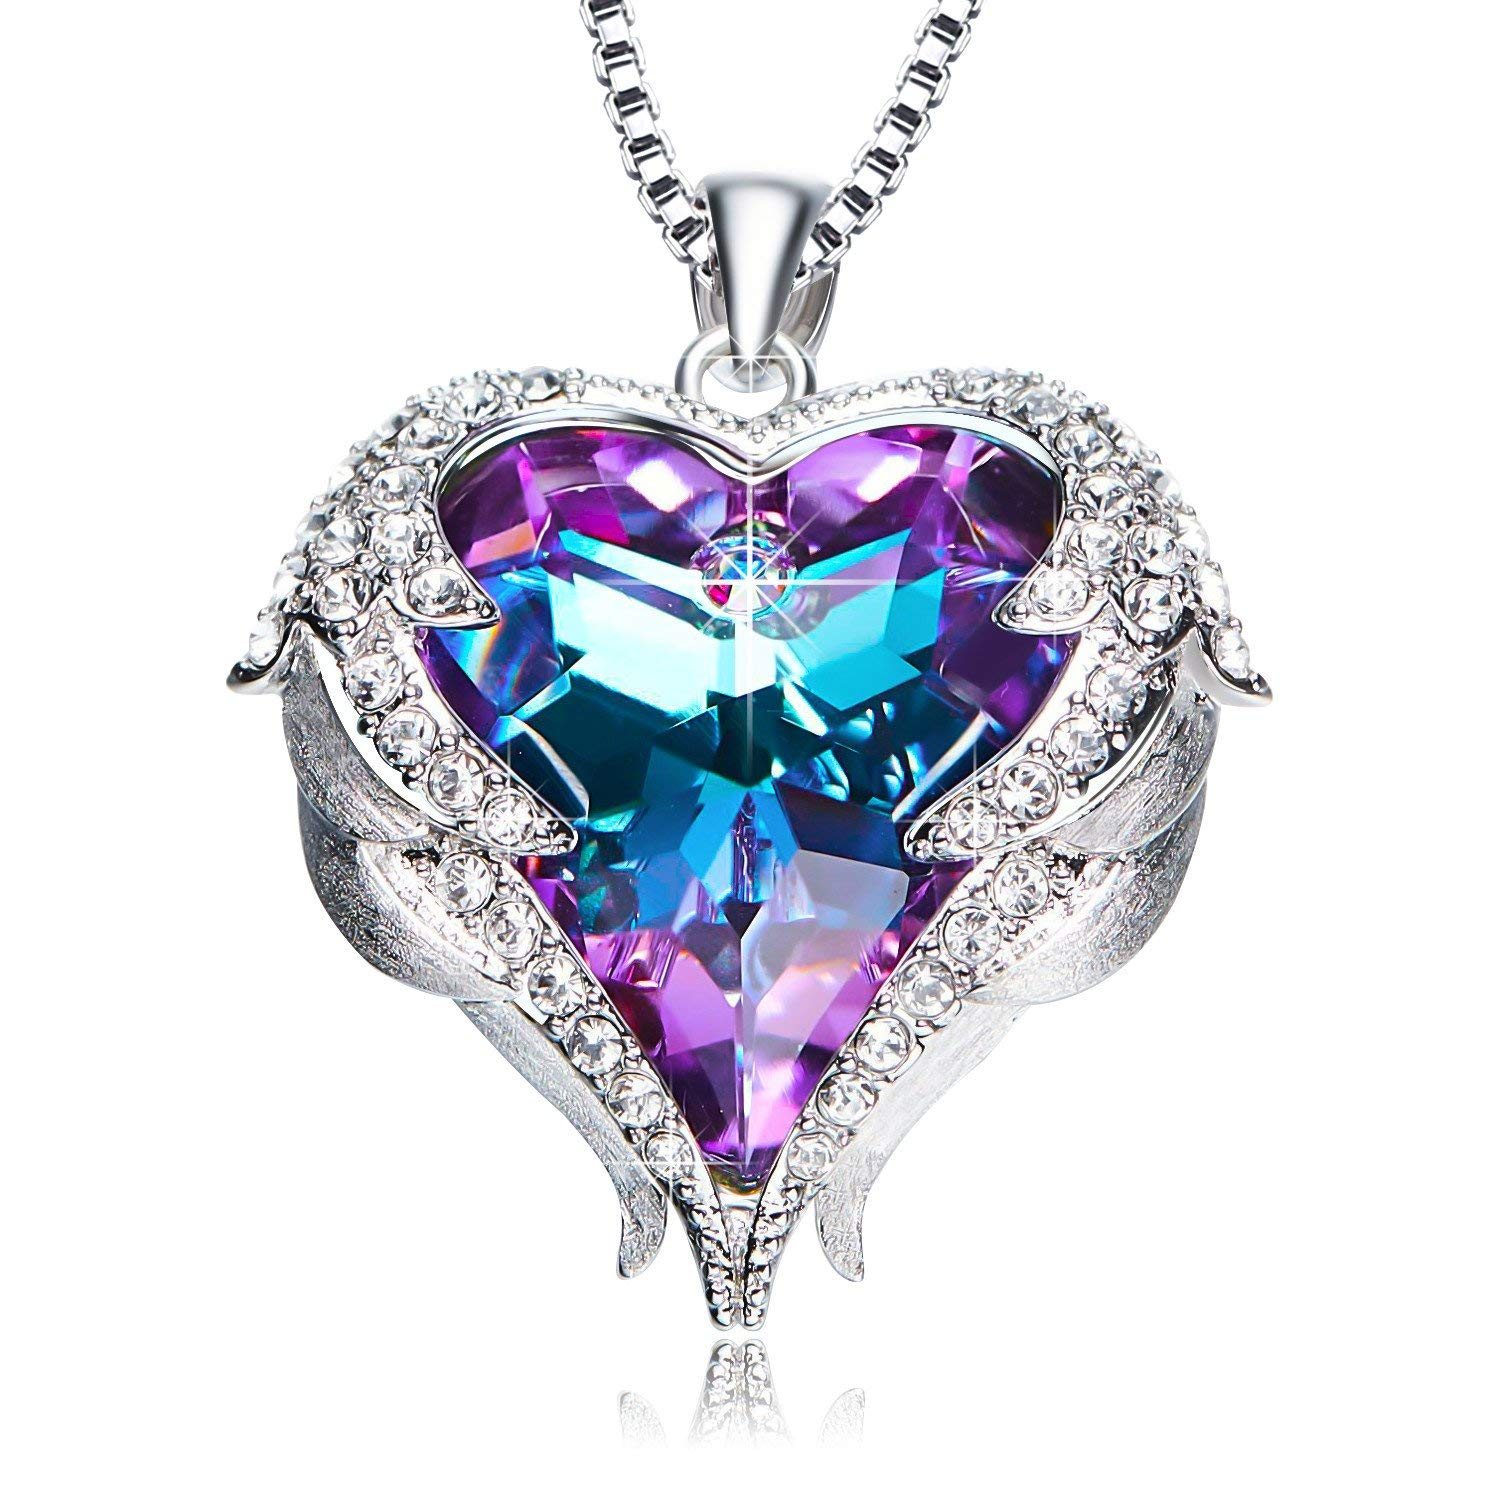 cba3b6c1b Amazon.com: NEWNOVE Heart of Ocean Pendant Necklaces for Women Made with Swarovski  Crystals (Purple Swarovski Crystals): Jewelry